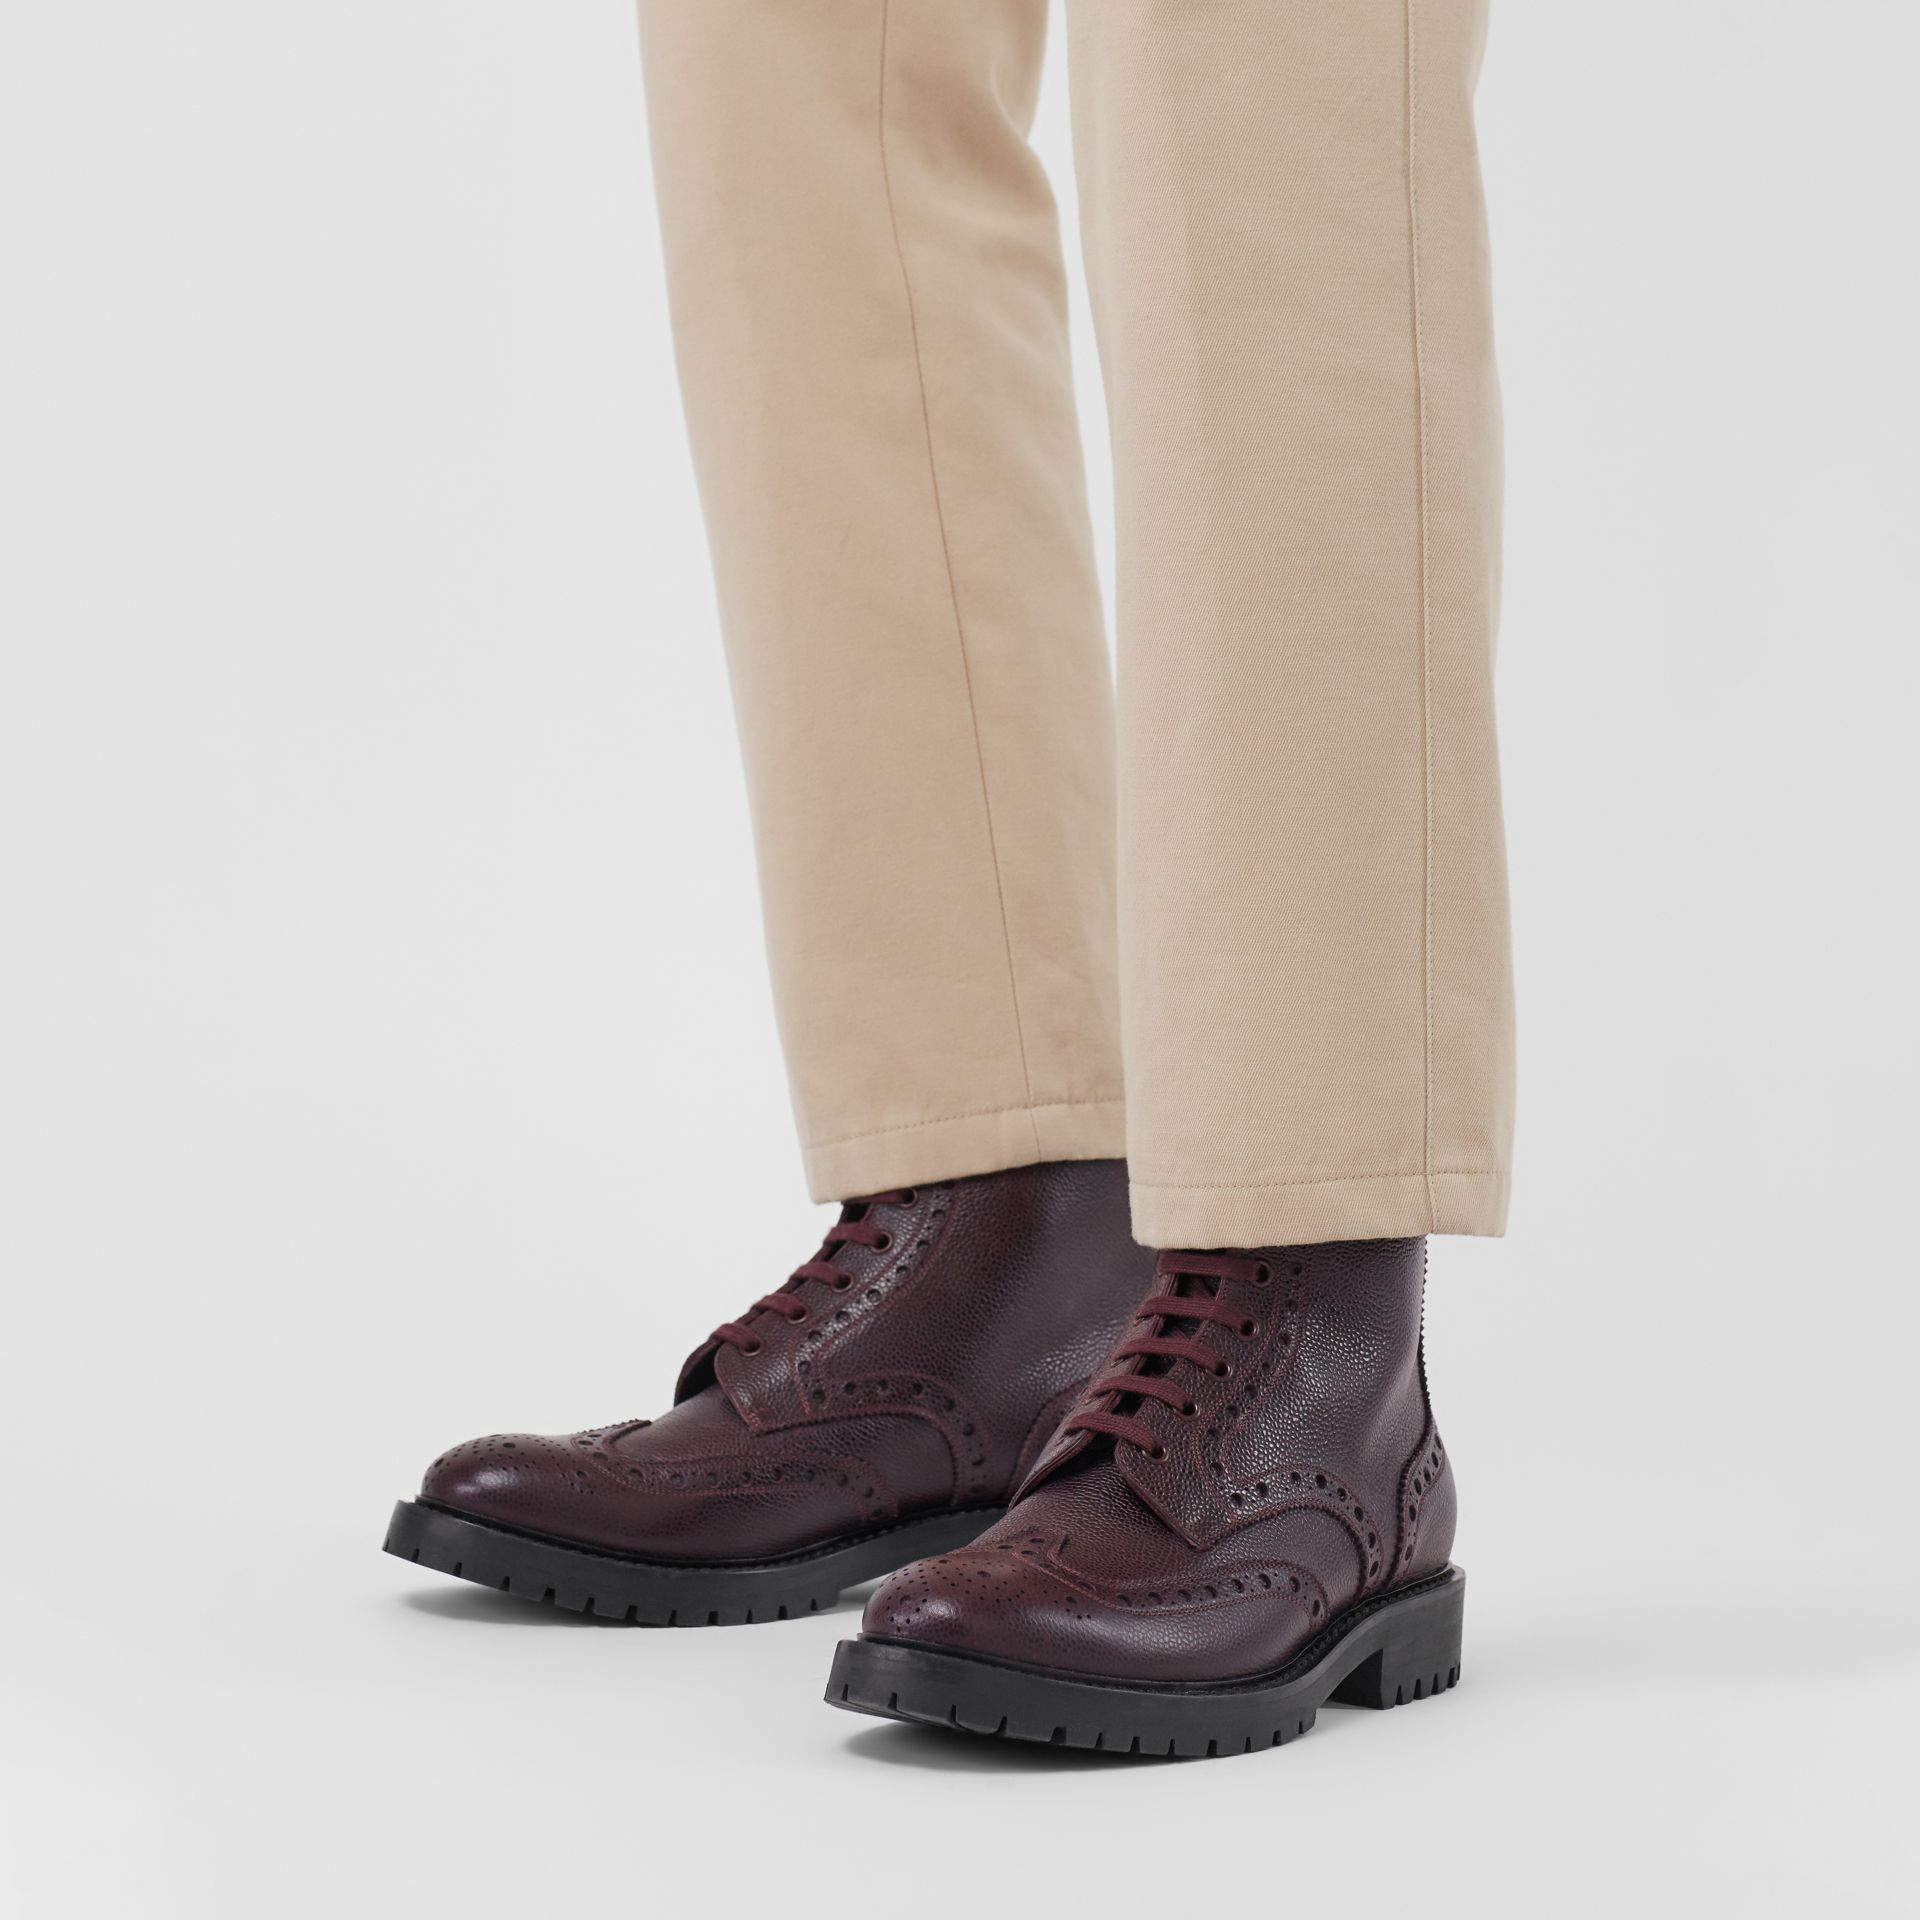 Brogue Detail Grainy Leather Boots in Bordeaux - Men | Burberry United States - gallery image 2